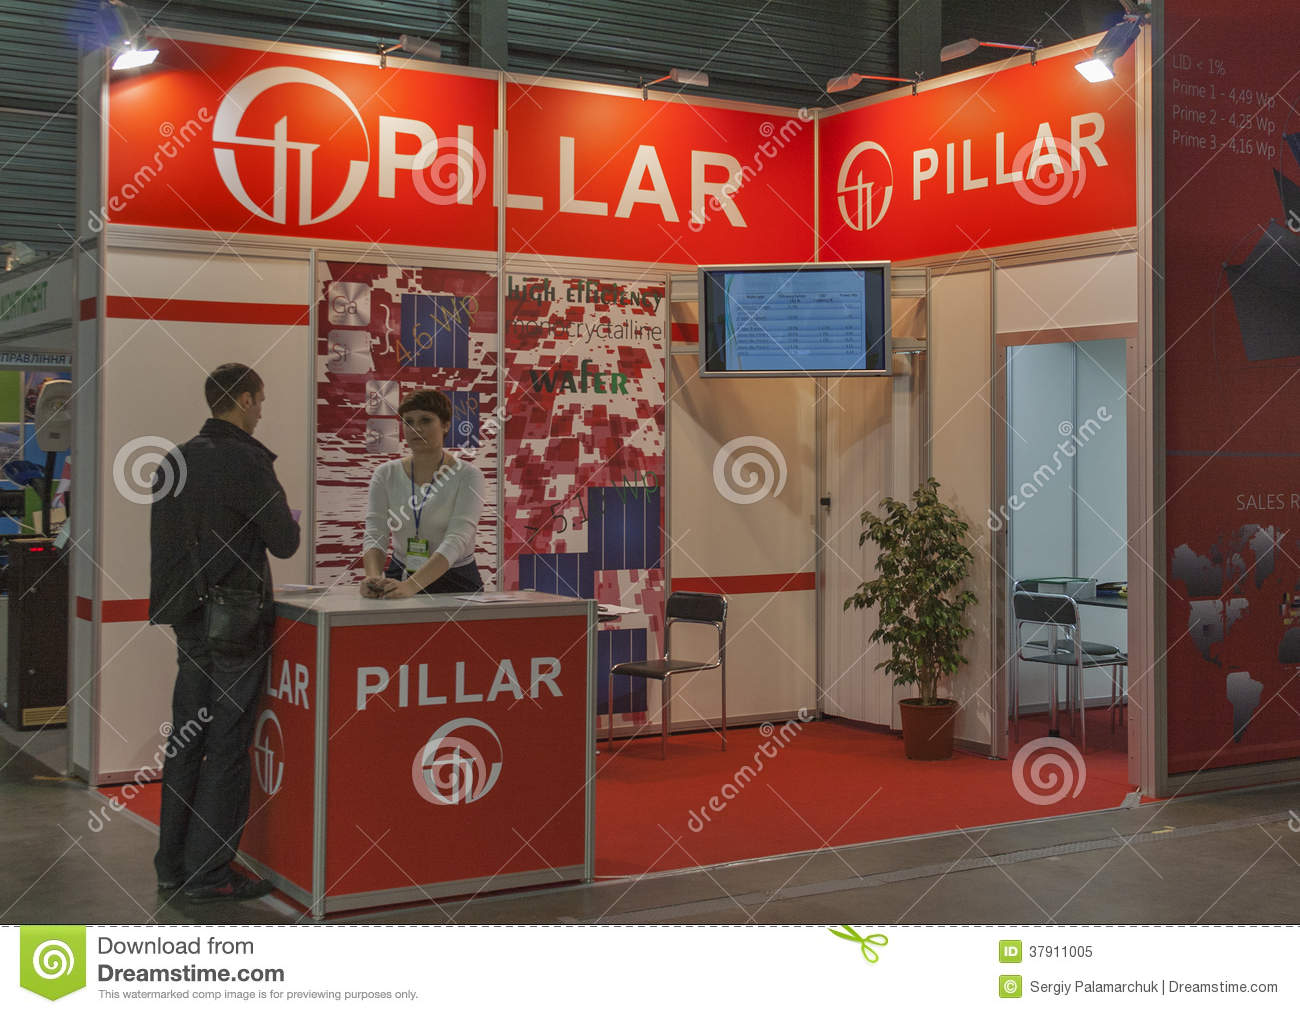 Trade Show Booth Visitors : Pillar ukrainian company booth editorial image